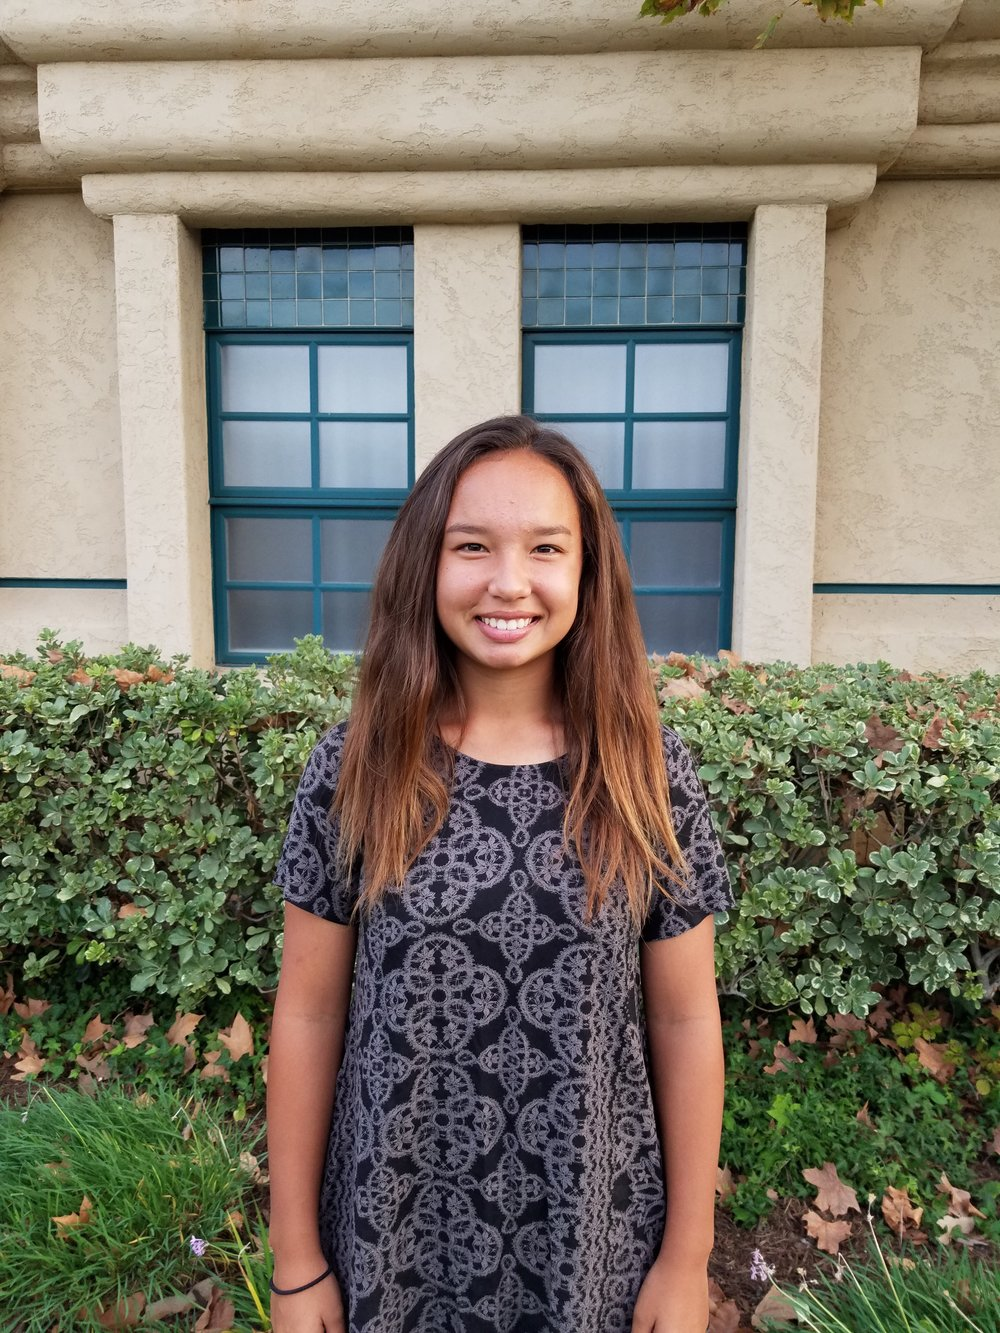 Krystin Brown  Age 16  Attends Trabuco Hills High School  Enjoys playing soccer  The Gospel gives me the eternal perspective I need to be able to shape how I live my life. I always feel the love and comfort Heavenly Father has for me.